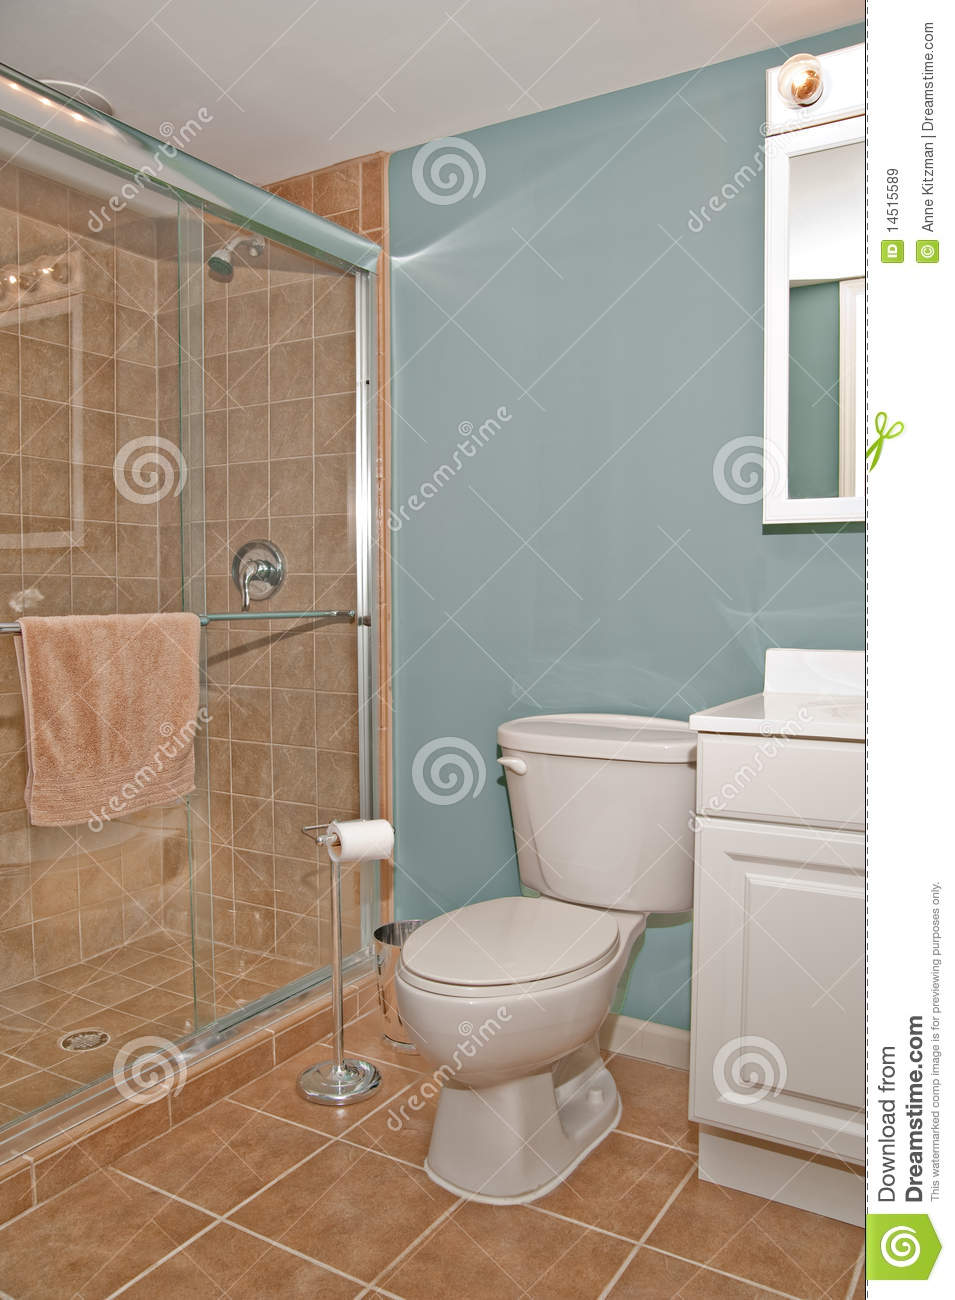 Bathroom Toilet And Shower Stall Stock Image  Image of